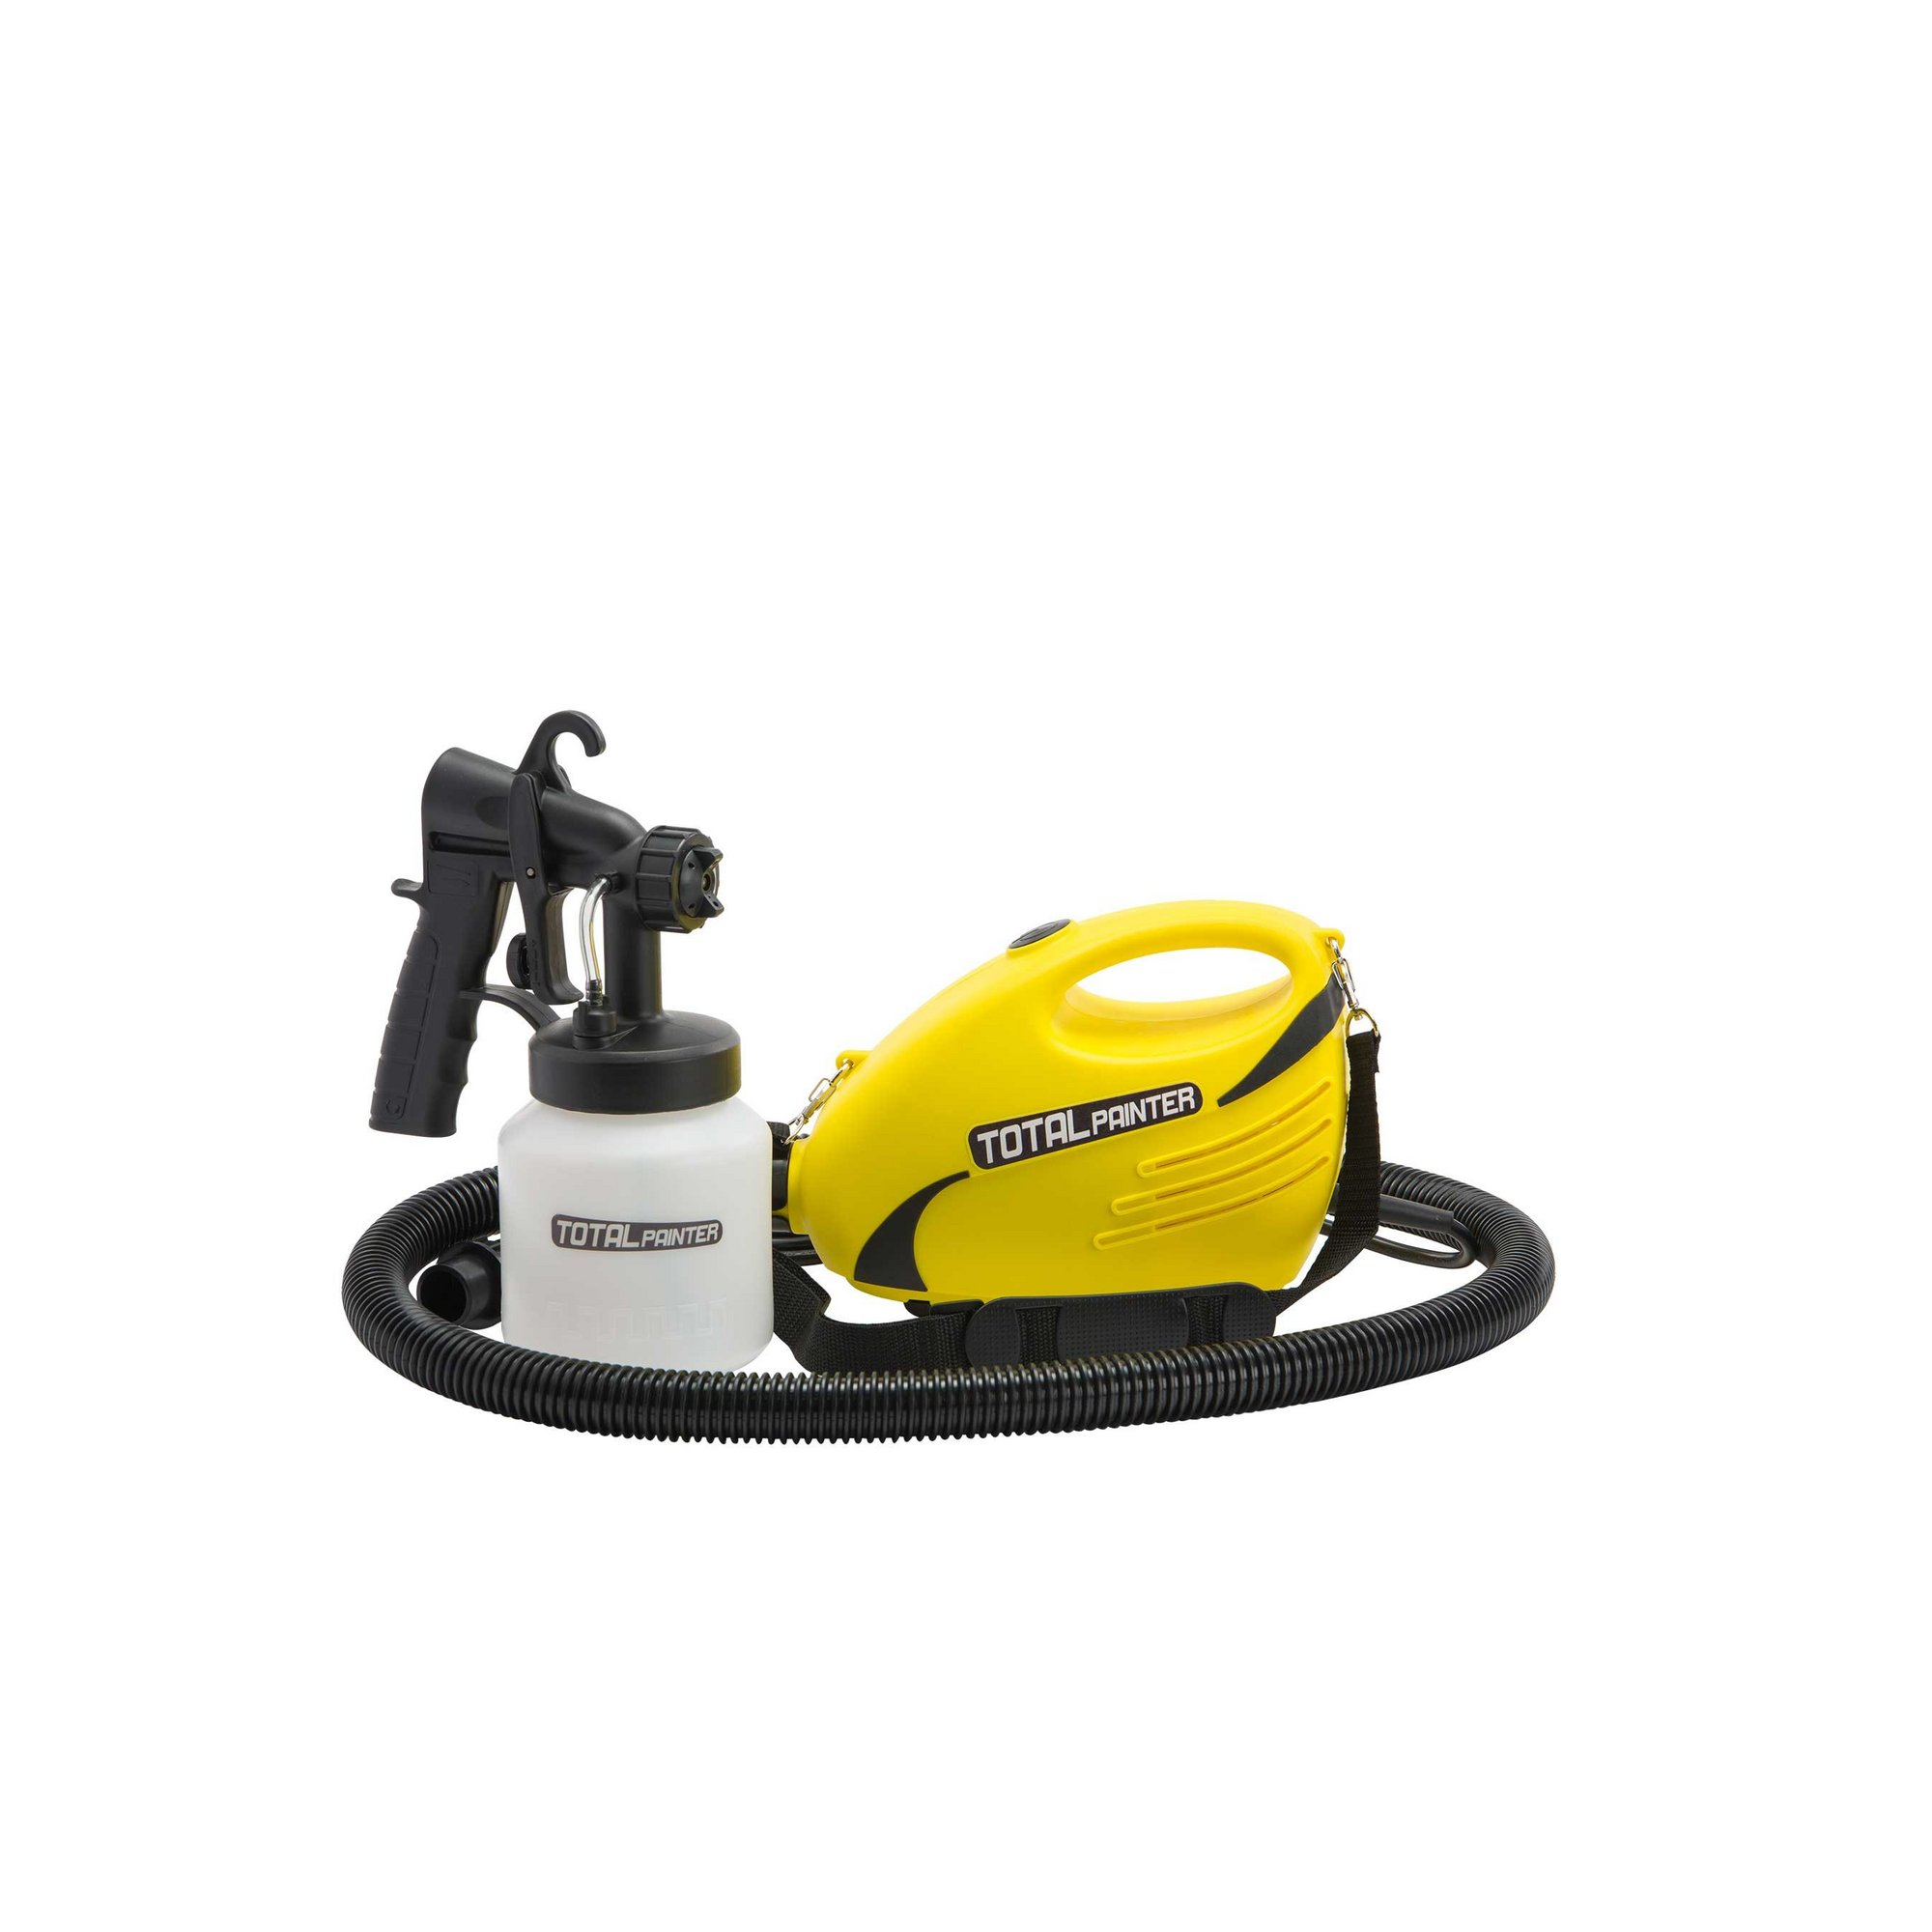 Image of Total Painter Paint Sprayer